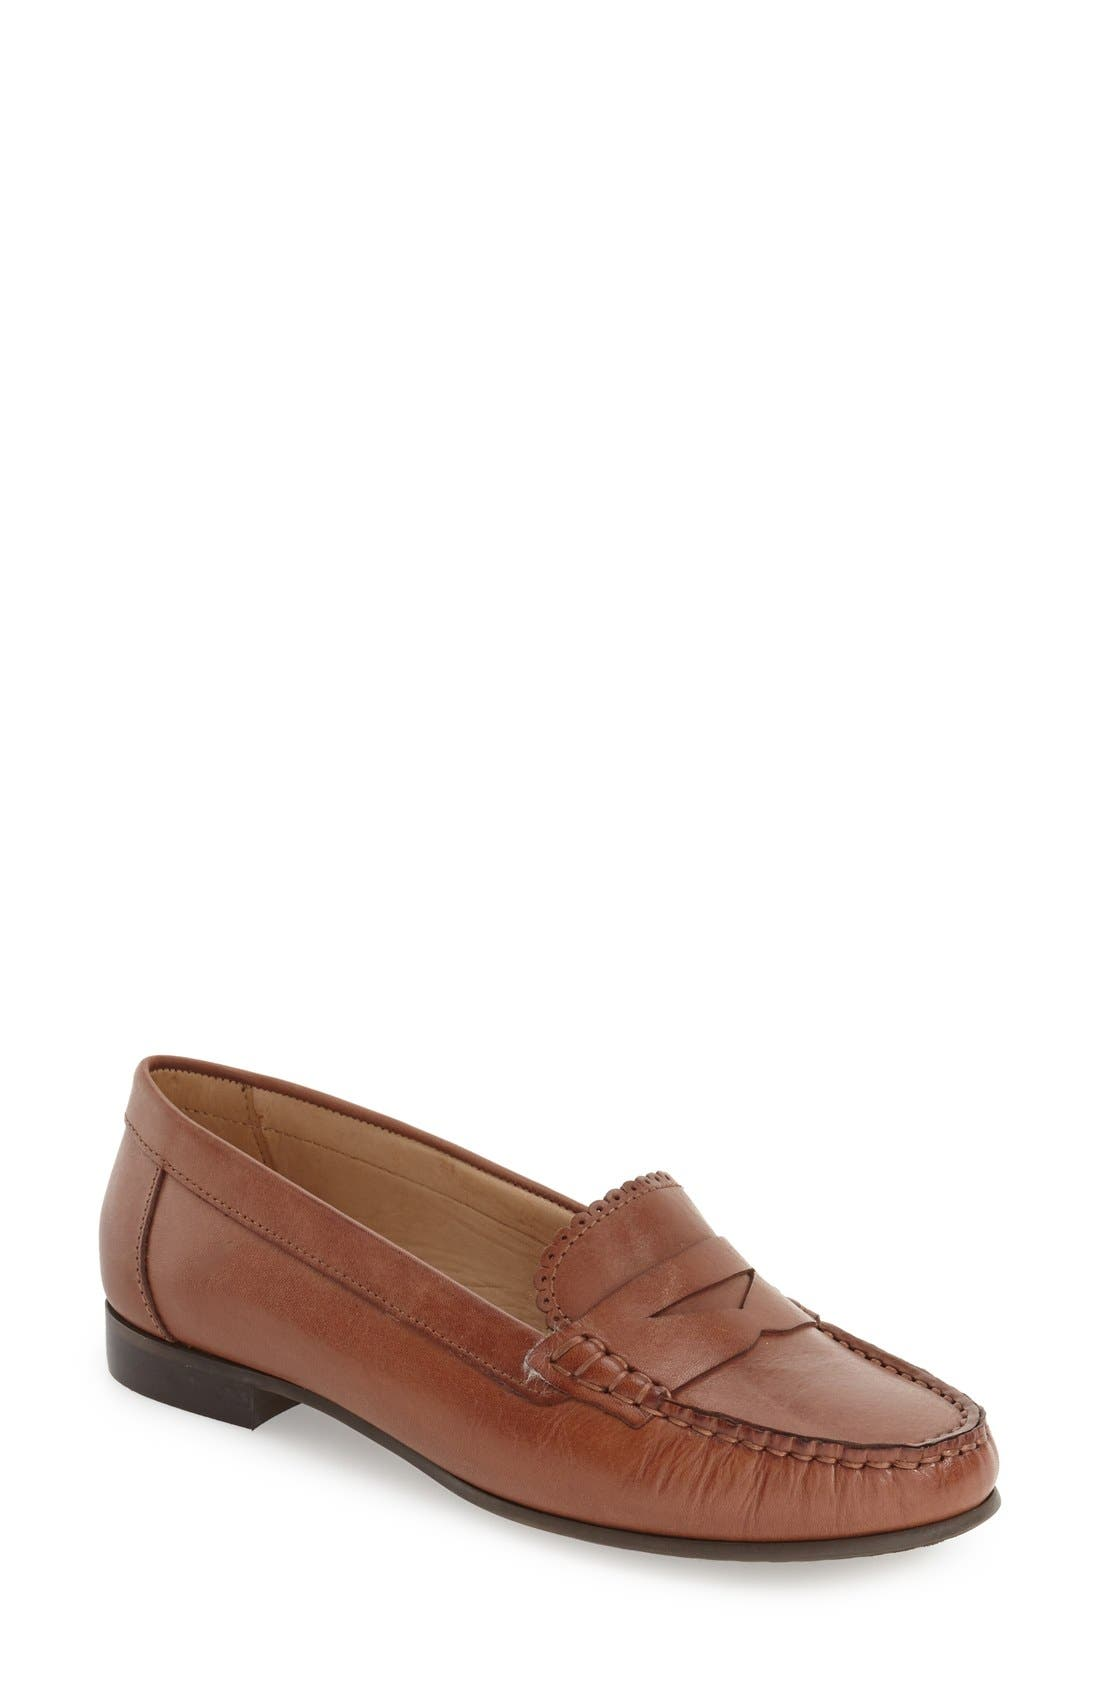 'Quinn' Leather Loafer,                             Main thumbnail 4, color,